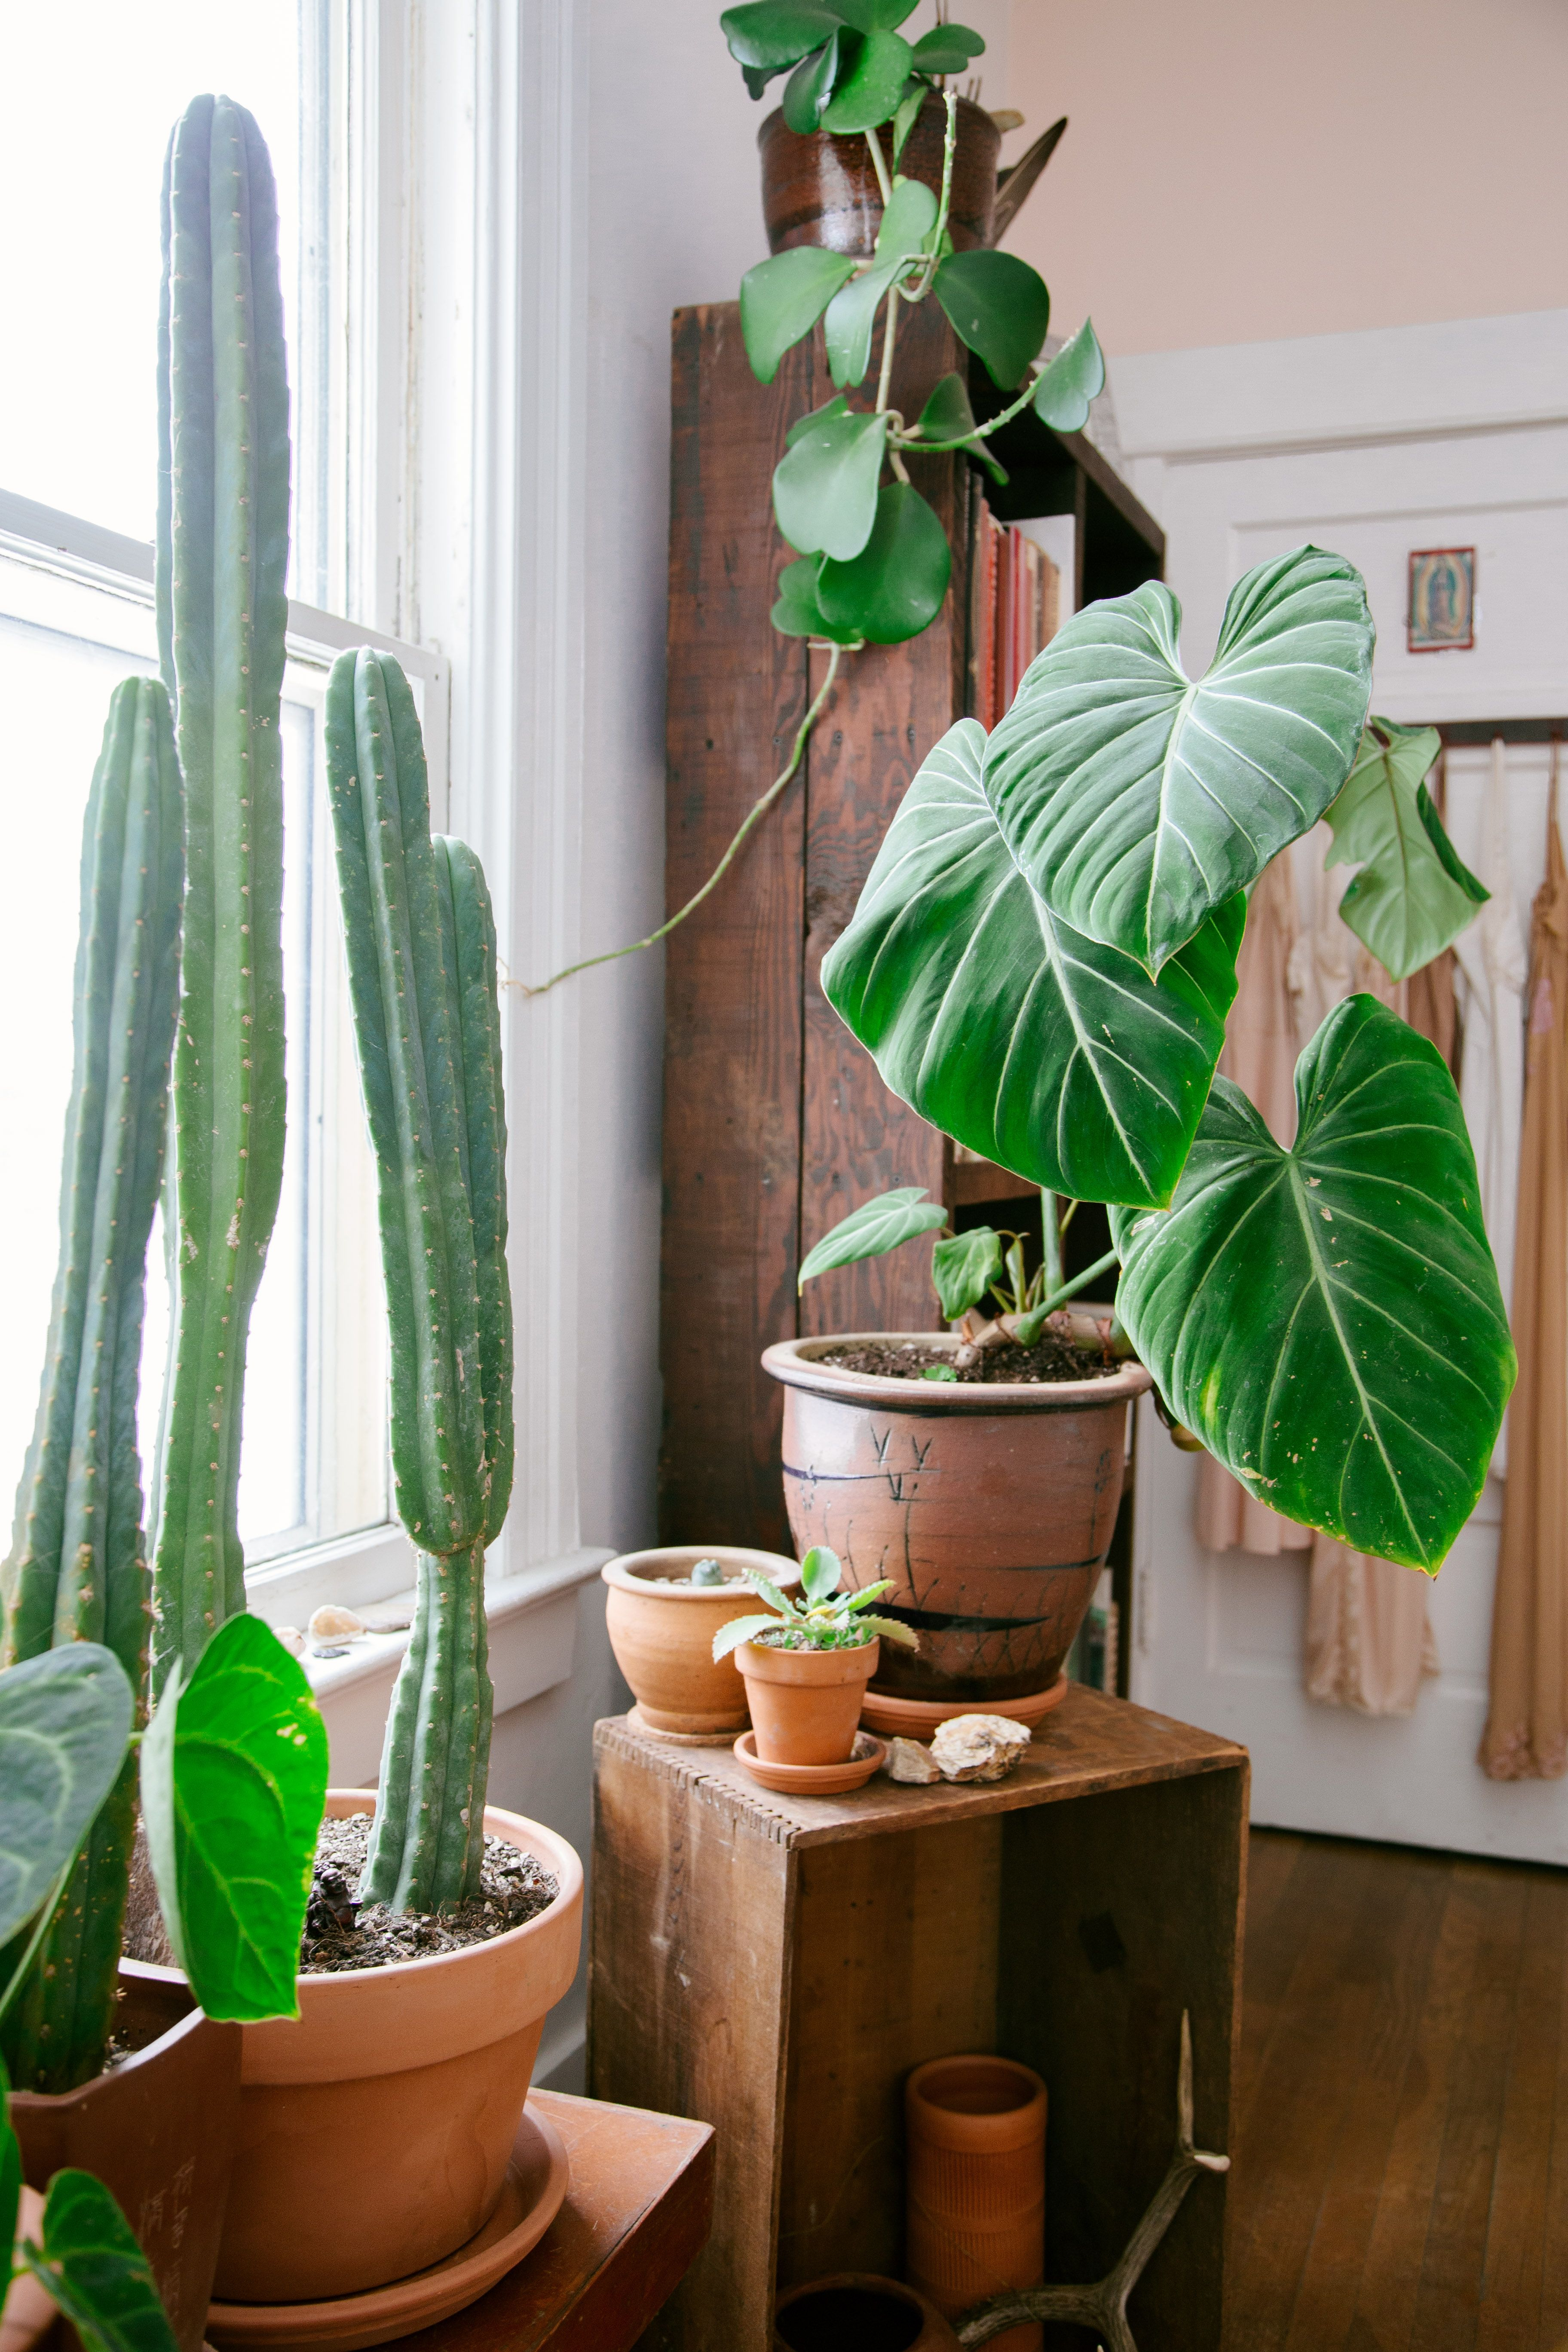 stylist design house plant seeds. Earthy Boho  Jungalow Hanging Potted PlantsPot Garden pots Cacti and Plants